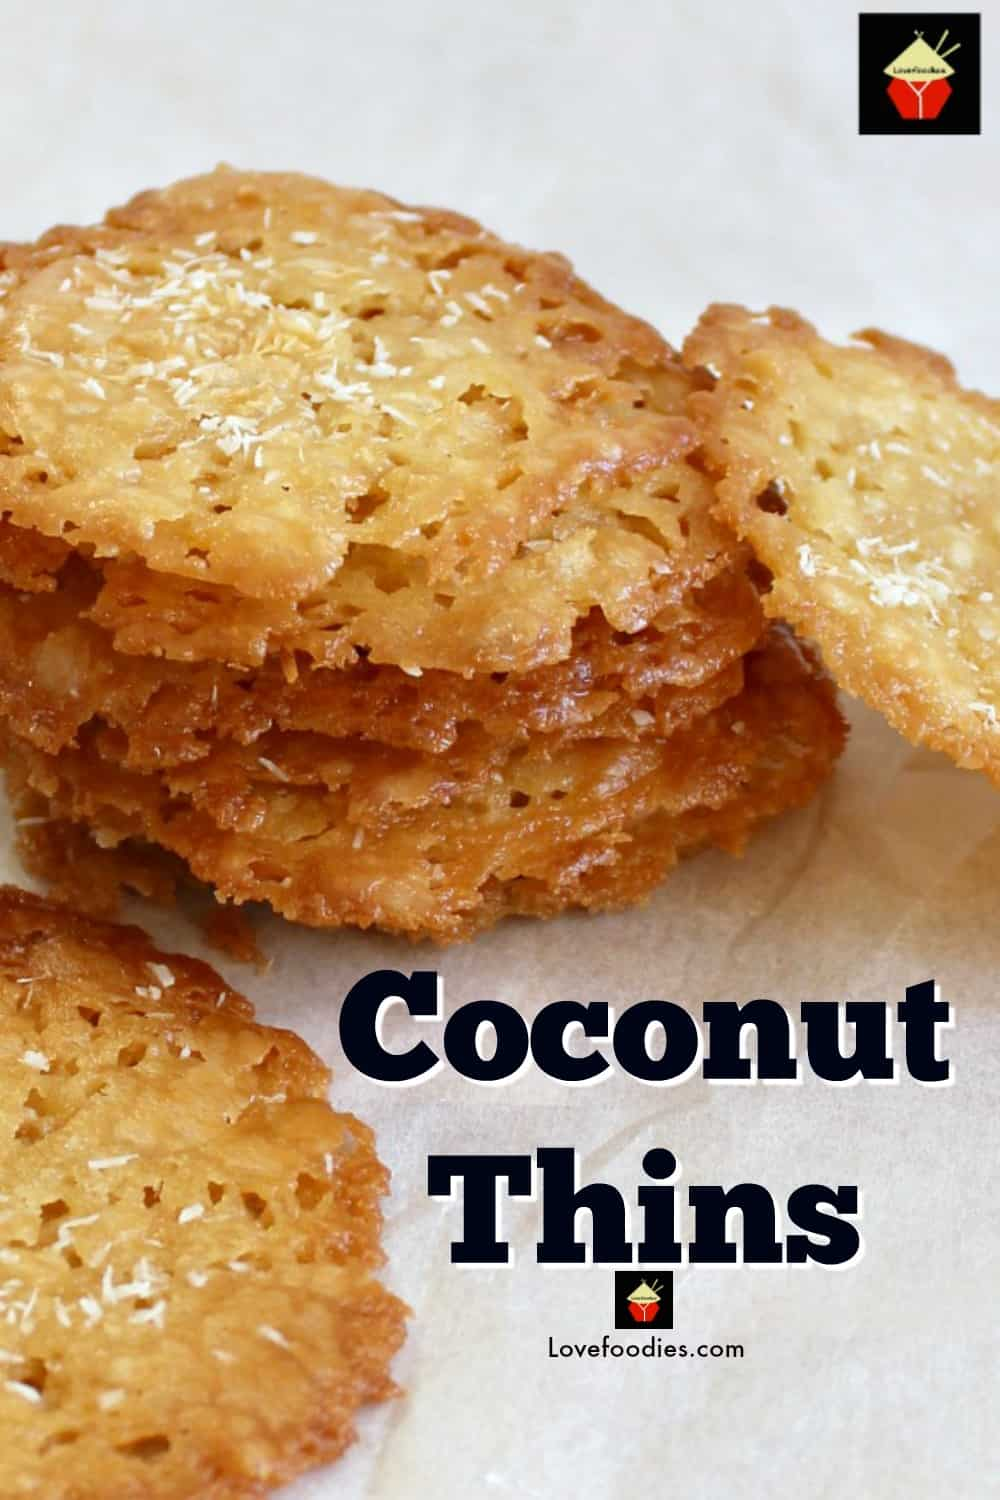 Coconut Thins! If you like crisp, caramel, coconut and sweet then these little treats are for you! They're absolutely delicious and will store for up to a week if you wish to make ahead. They also make lovely gifts too! Nice easy recipe using regular ingredients